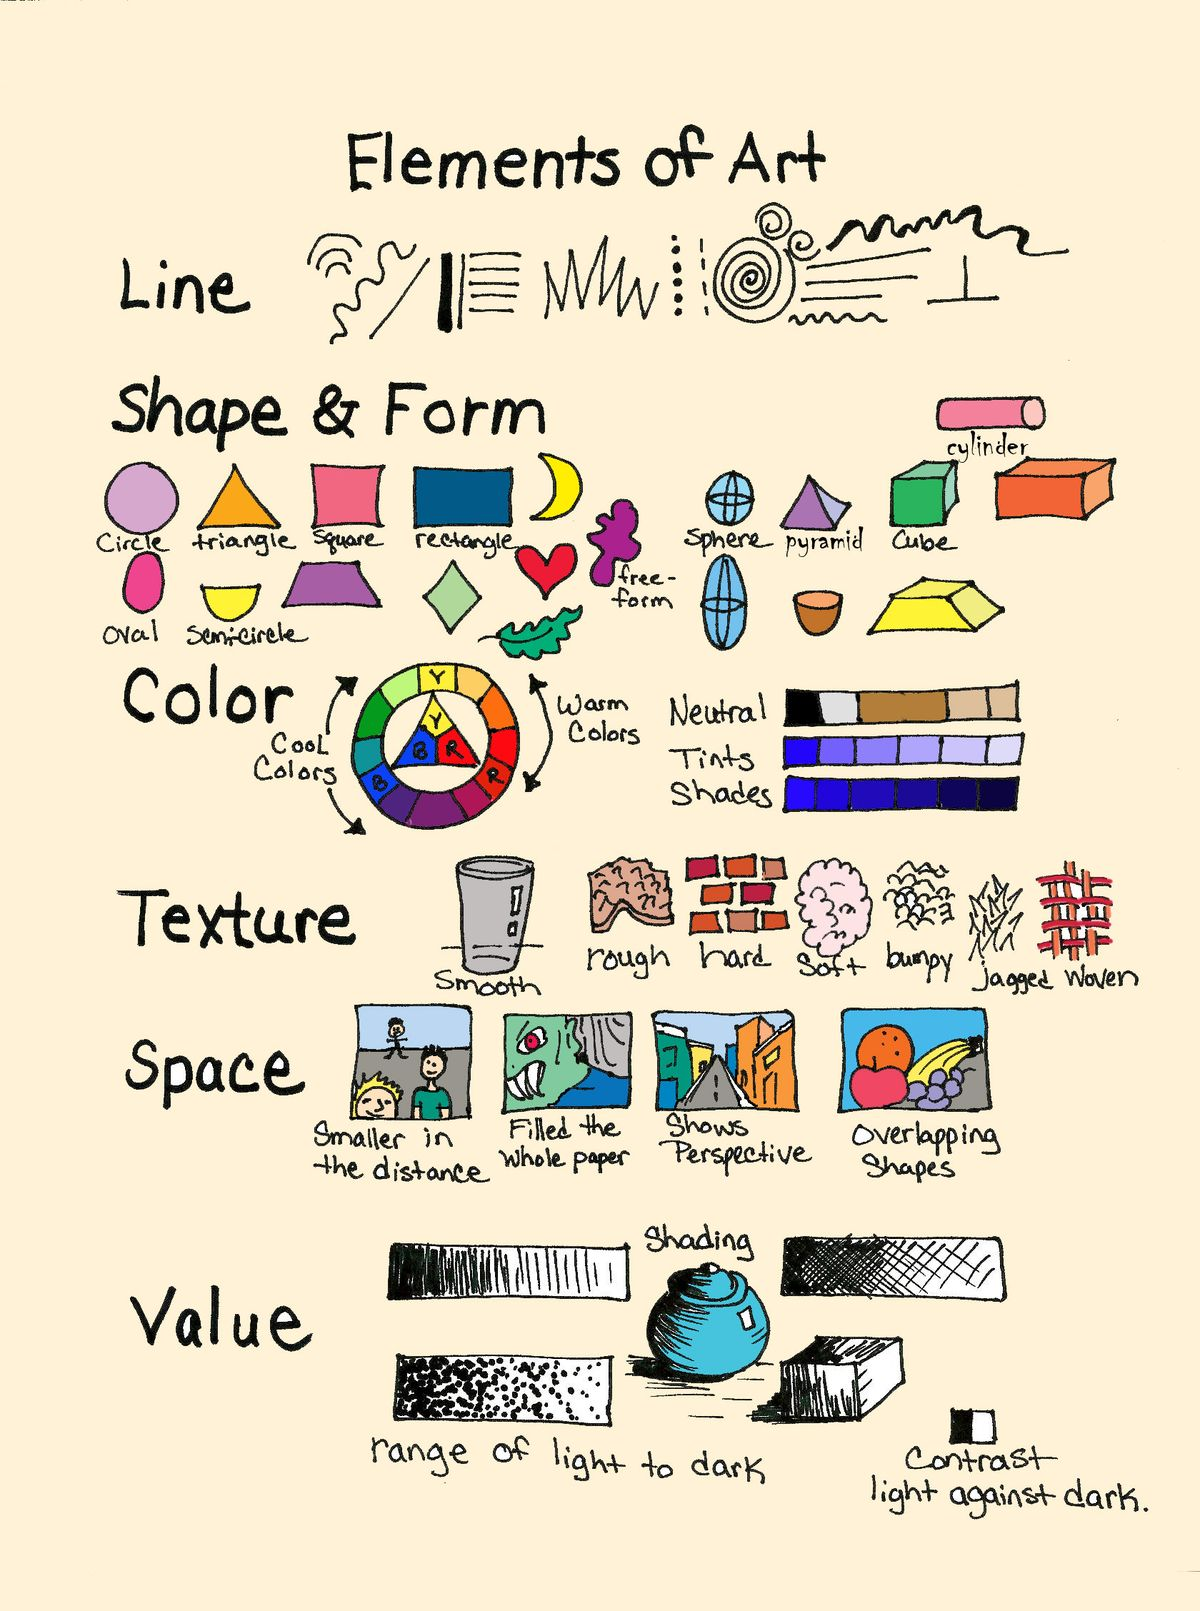 Elements Of Visual Arts Space : Images about elements of art on pinterest negative